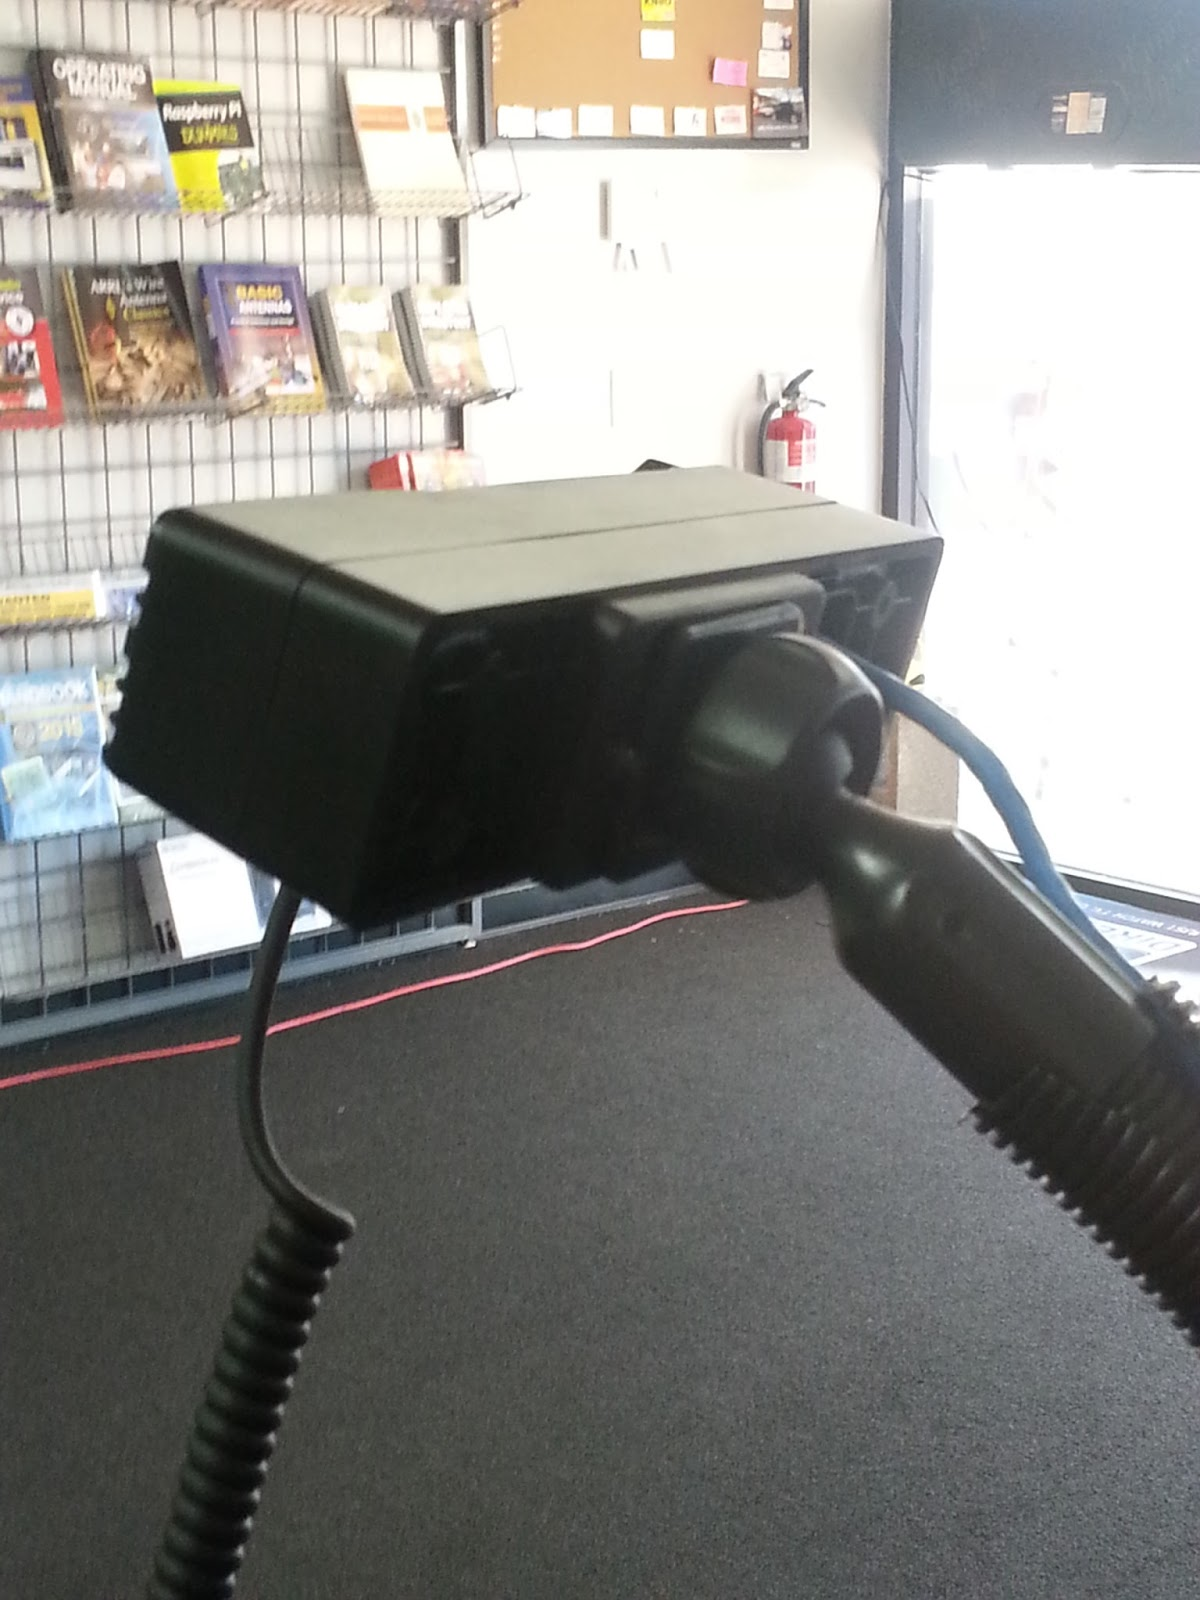 CS800 (UHF) and CS801 (VHF) DMR mobile radios: Connect